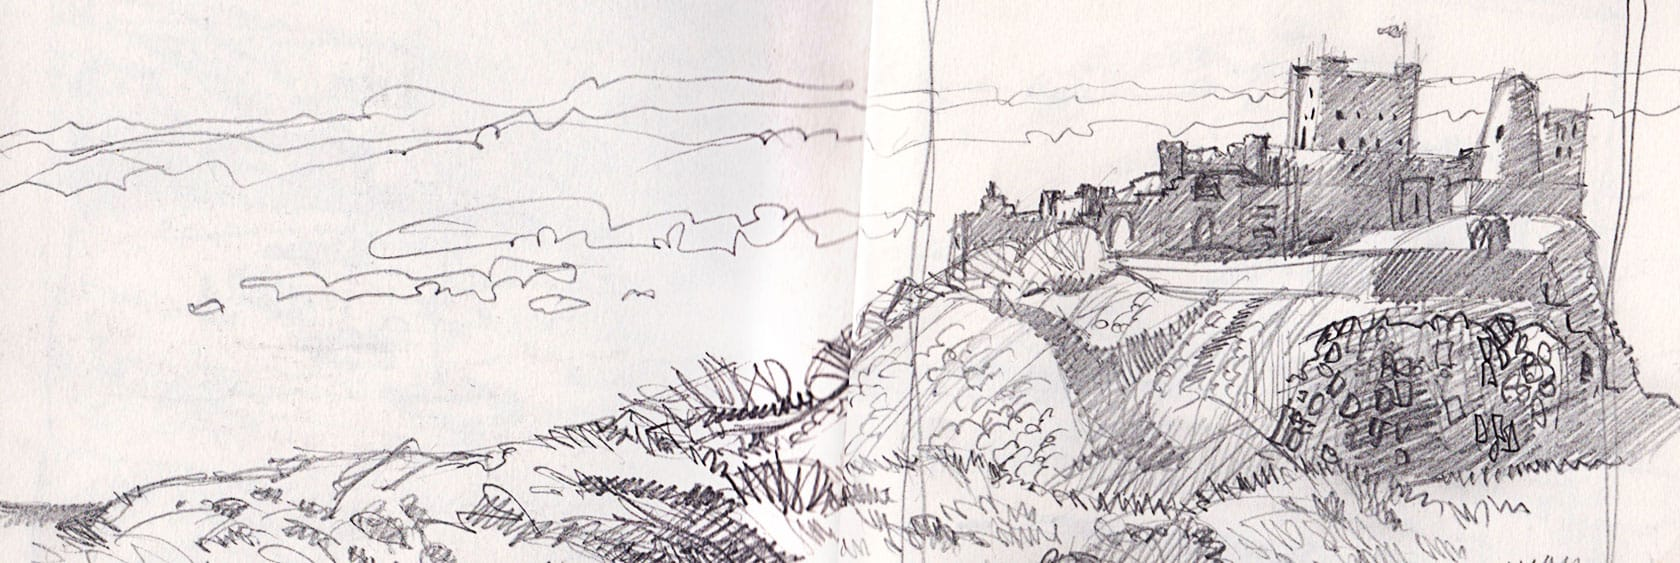 A pencil sketch, quite quick, of the castle with detail of the mound it sits on